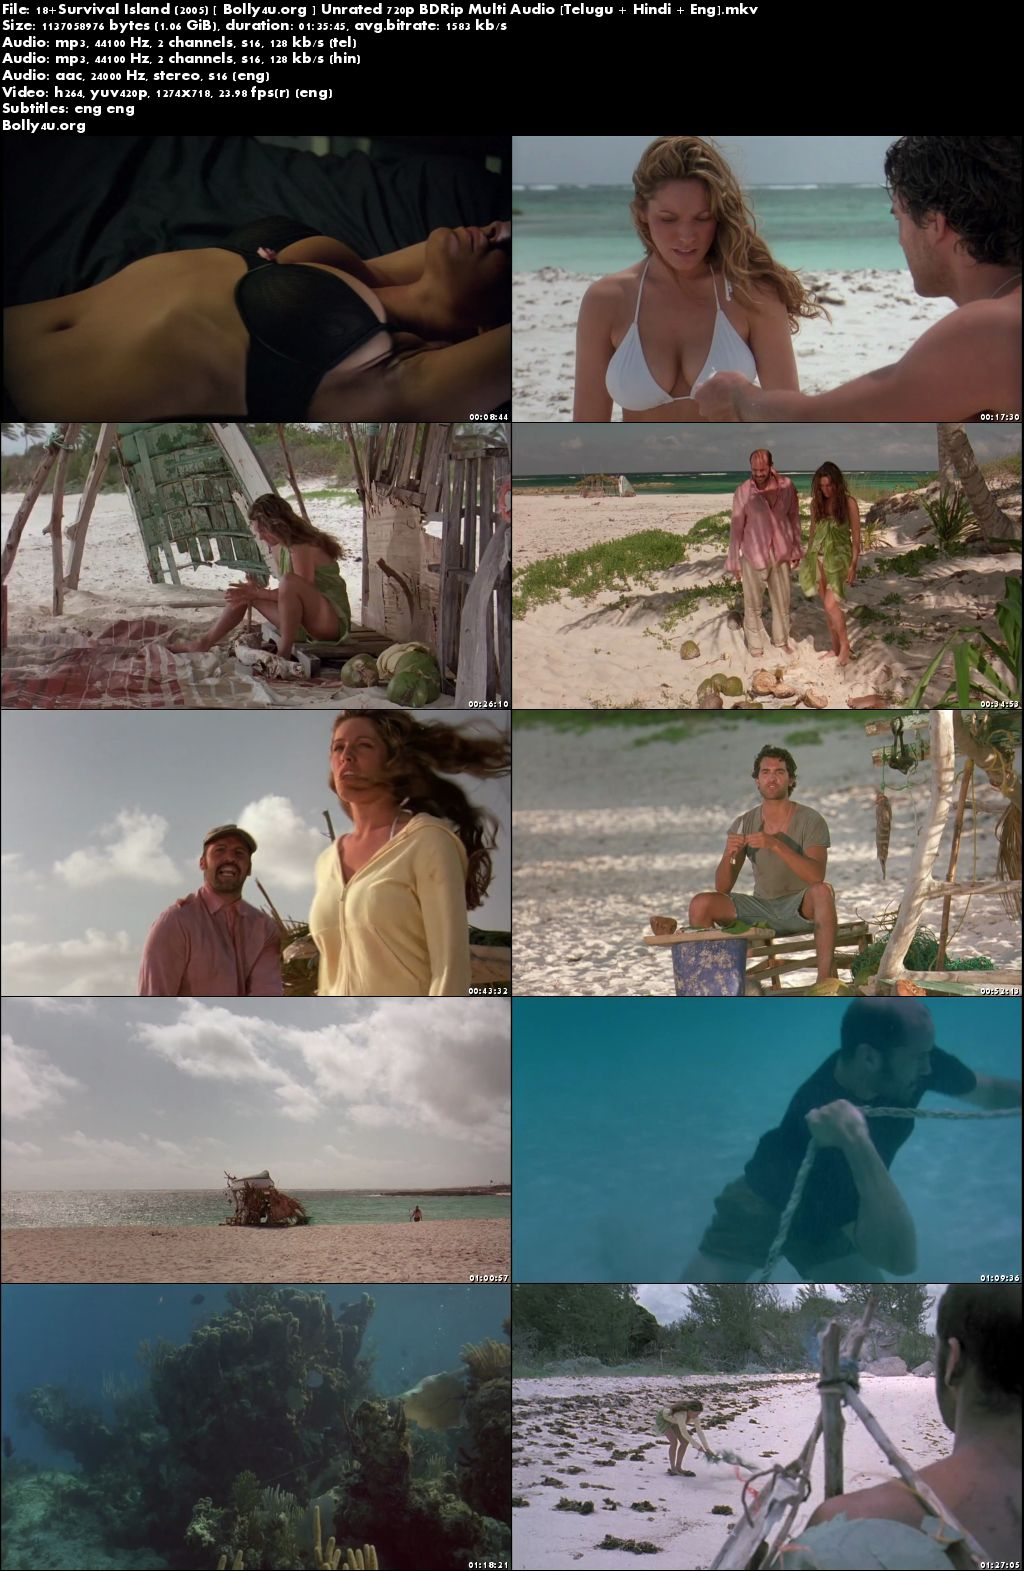 [18+] Survival Island 2005 BDRip 480p Multi Audio 400Mb Hindi Download